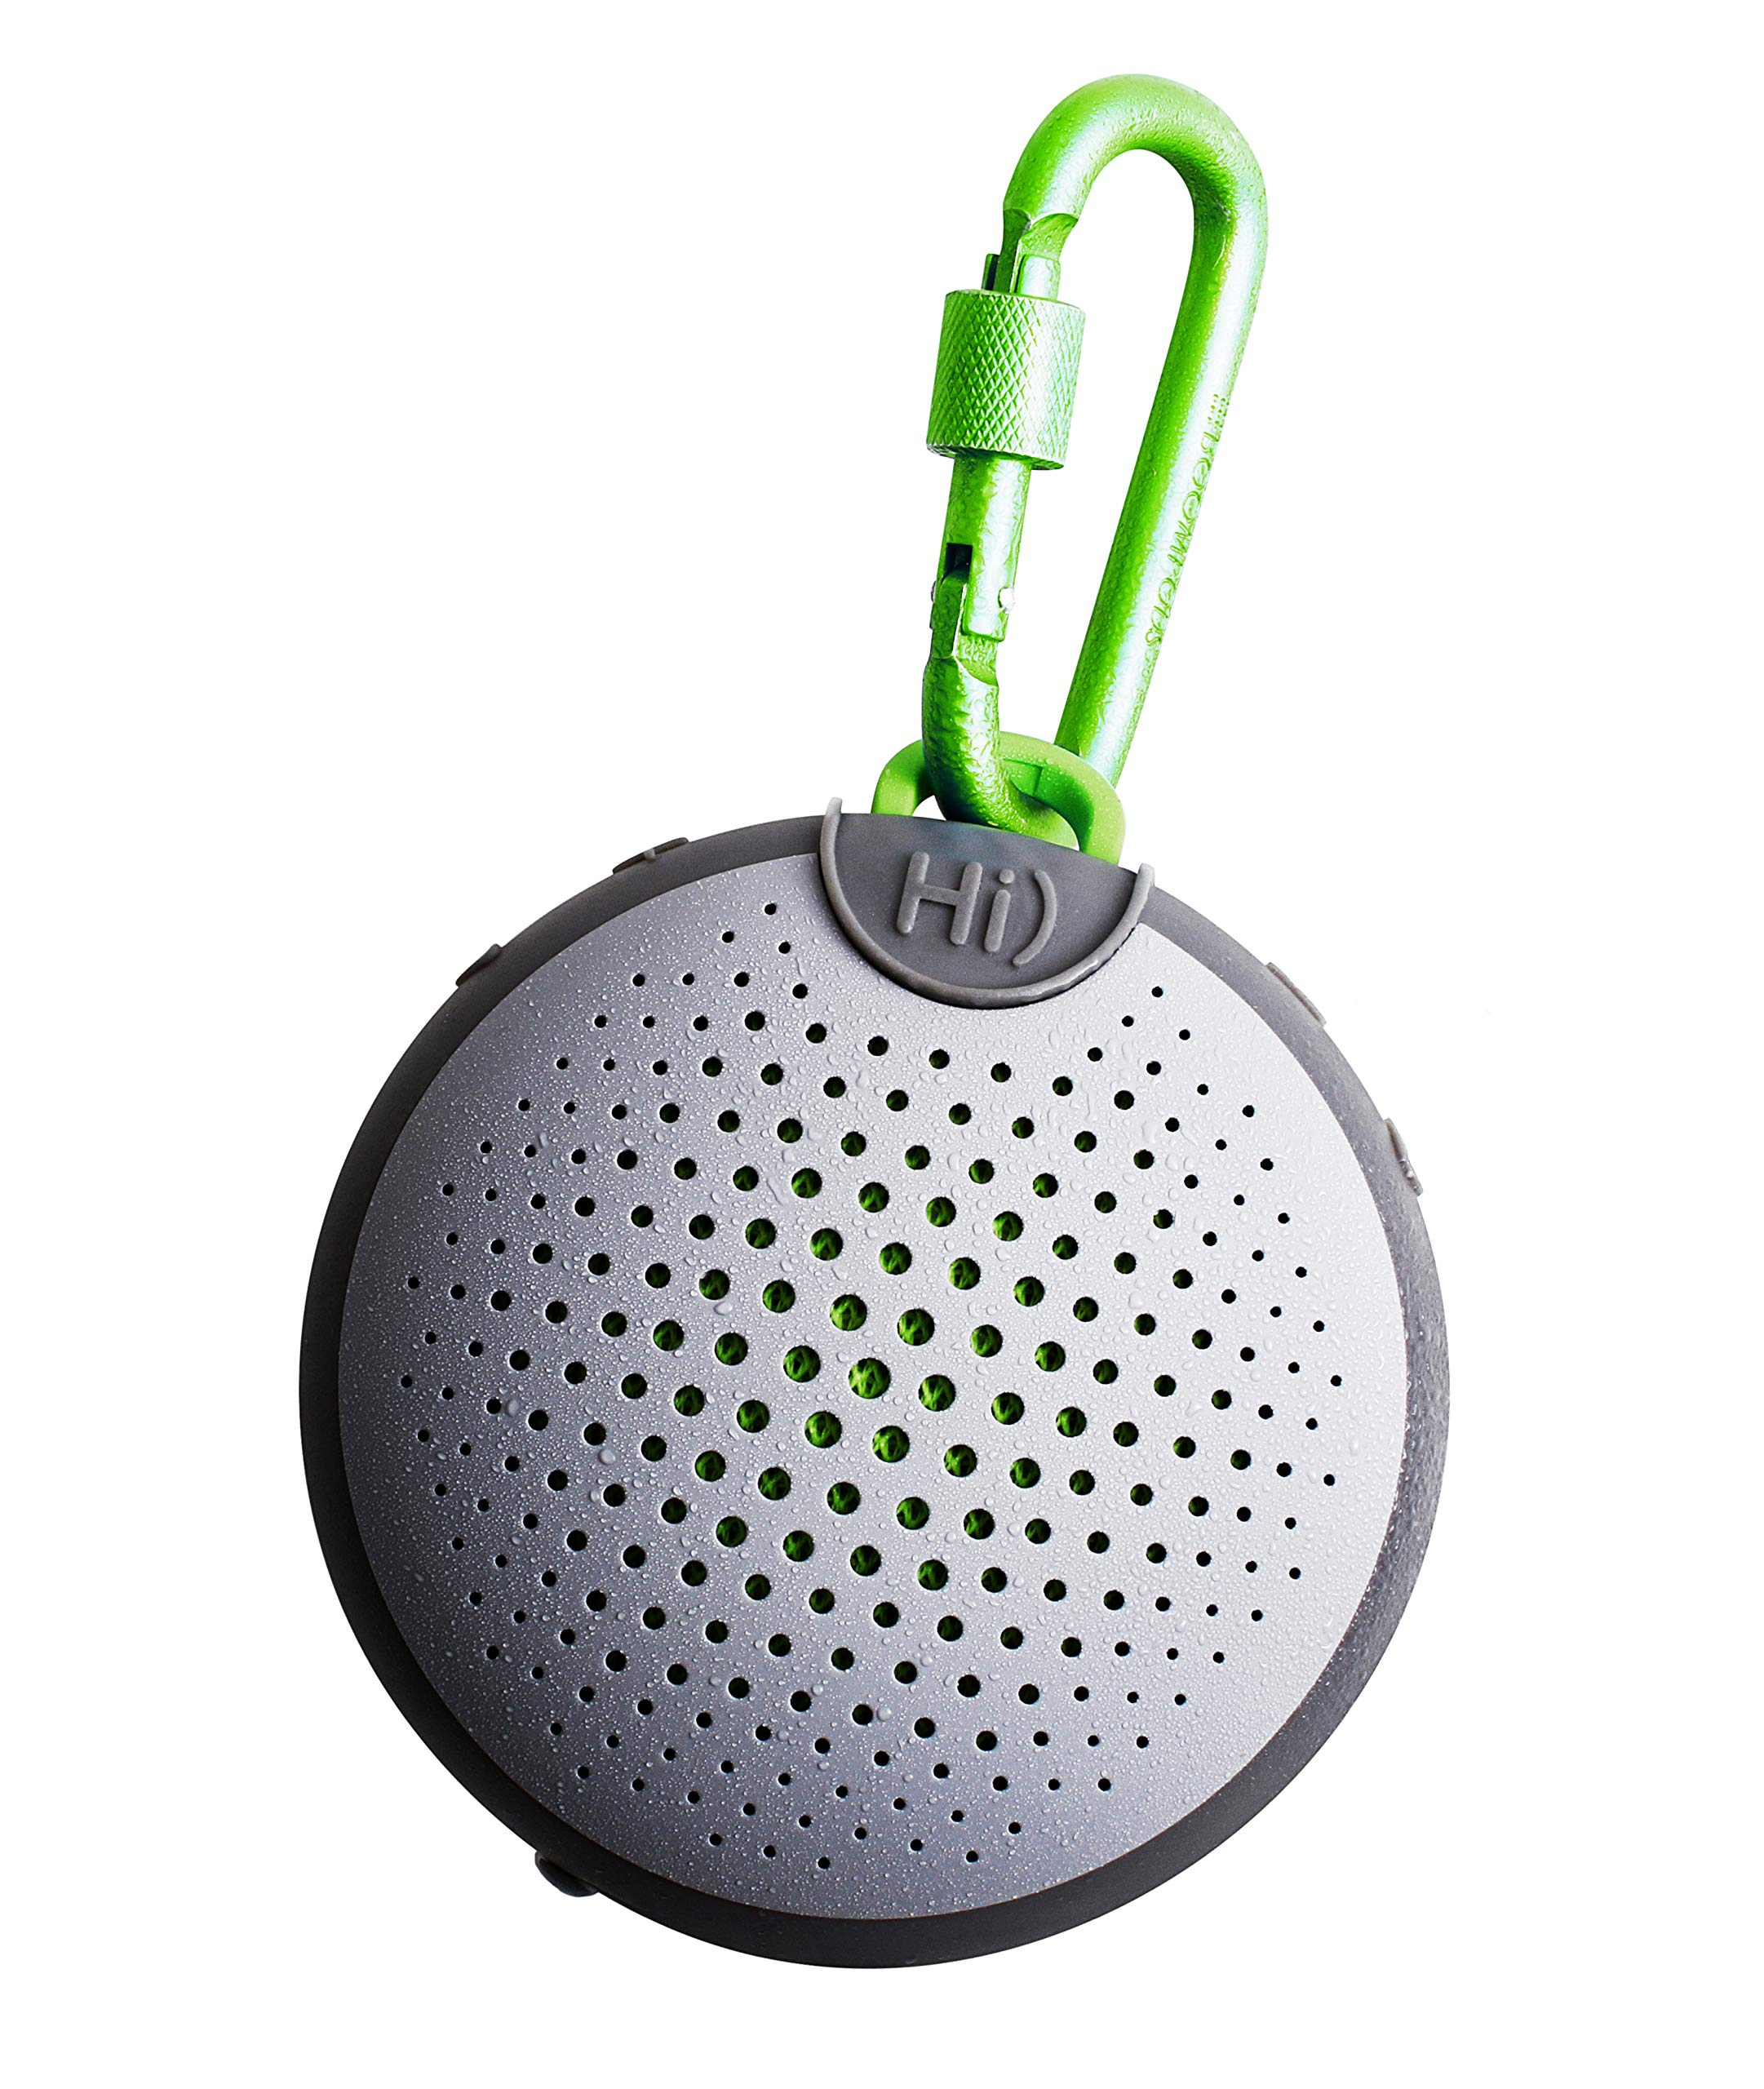 BOOMPODS AQUABLASTER - Waterproof Bluetooth Portable Wireless Speaker with Amazon Alexa - Hi-Quality Sound - Awesome Listening in Shower at The Pool or The Beach with Over 5-Hours of Active Playtime